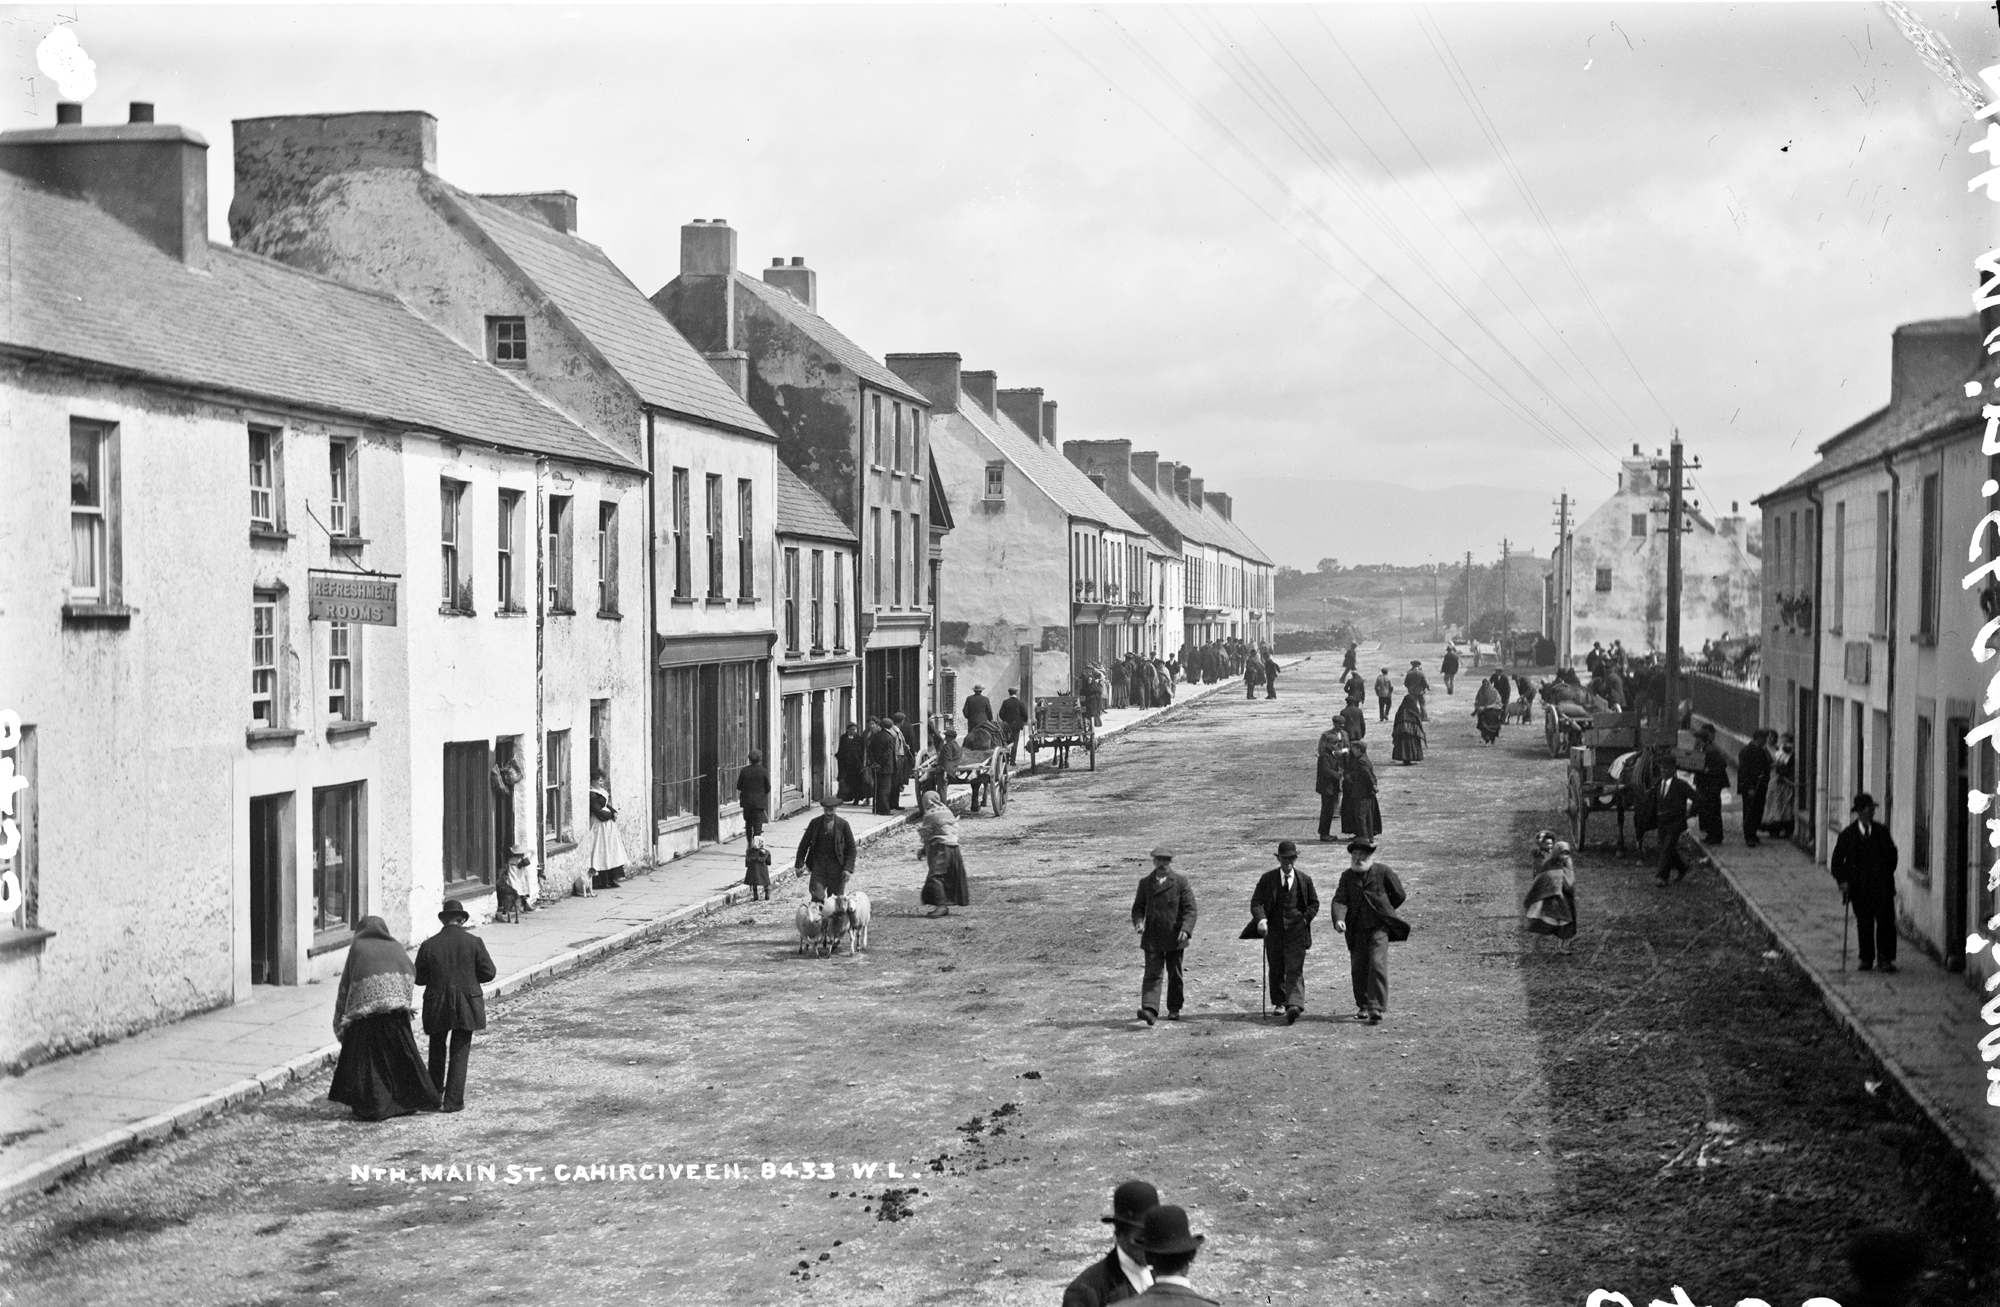 Main Street North, Cahirciveen, Co. Kerry